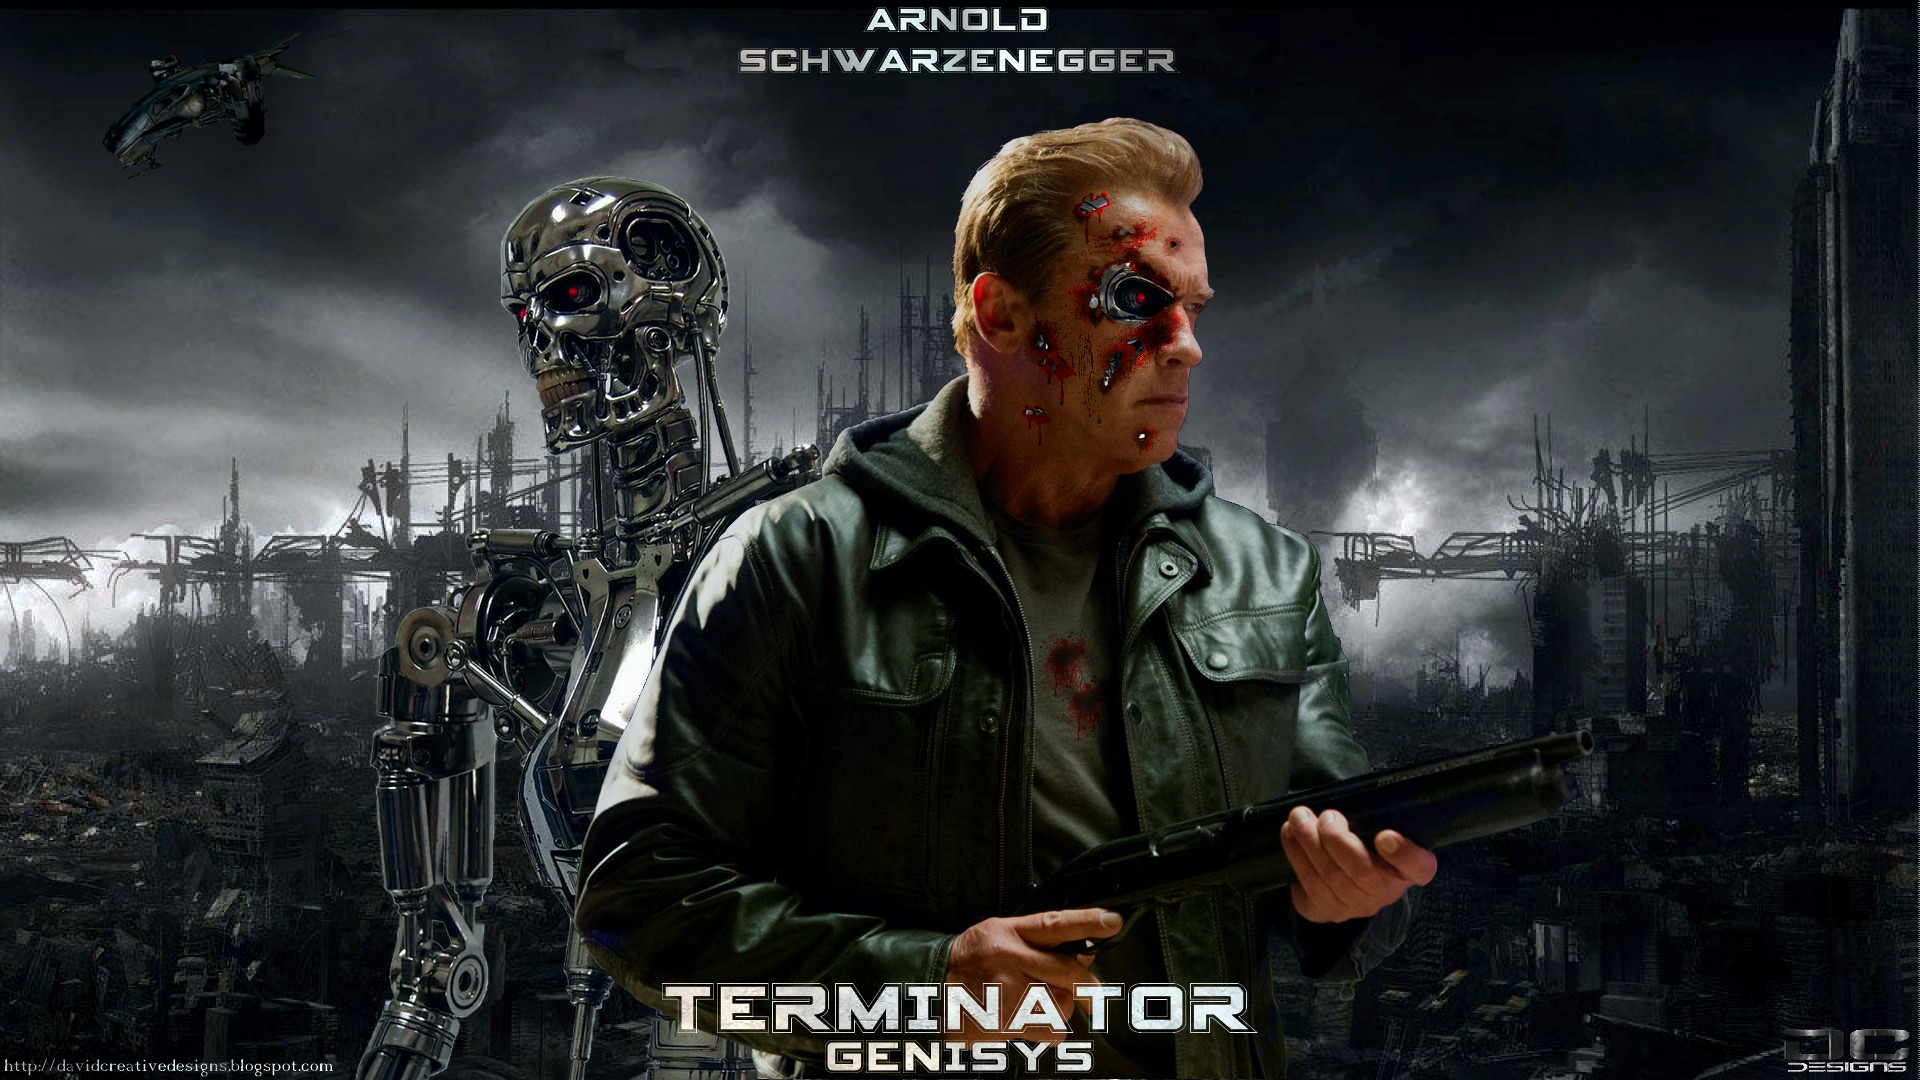 Terminator salvation wallpaper hd 70 images 3000x1993 terminator salvation christian bale thecheapjerseys Image collections